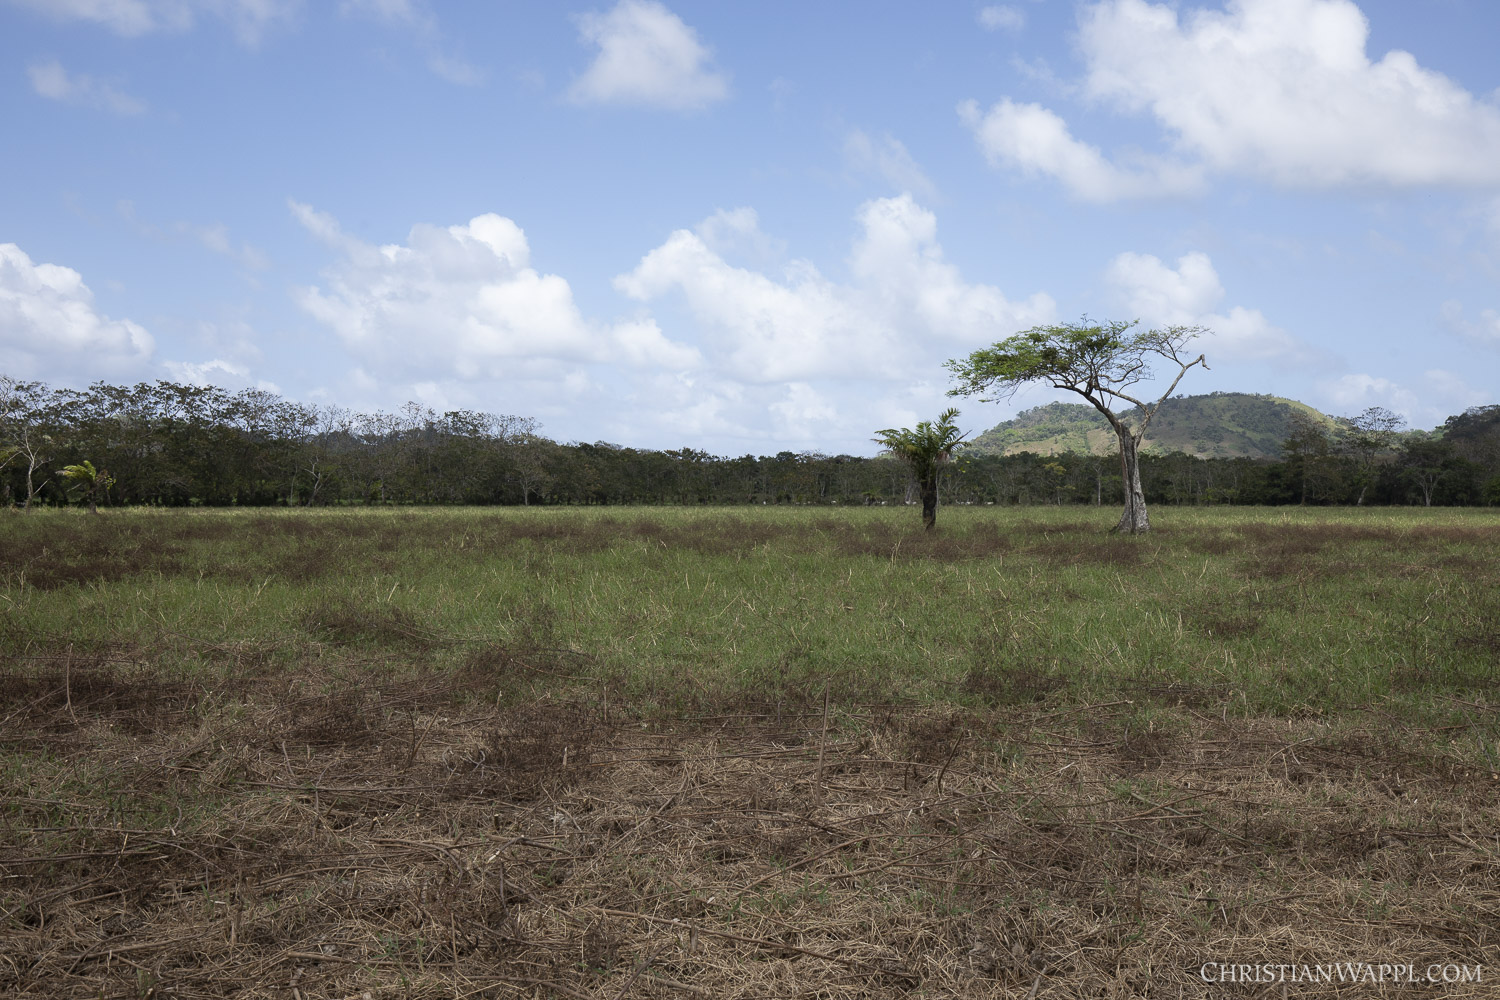 Land cleared for agriculture